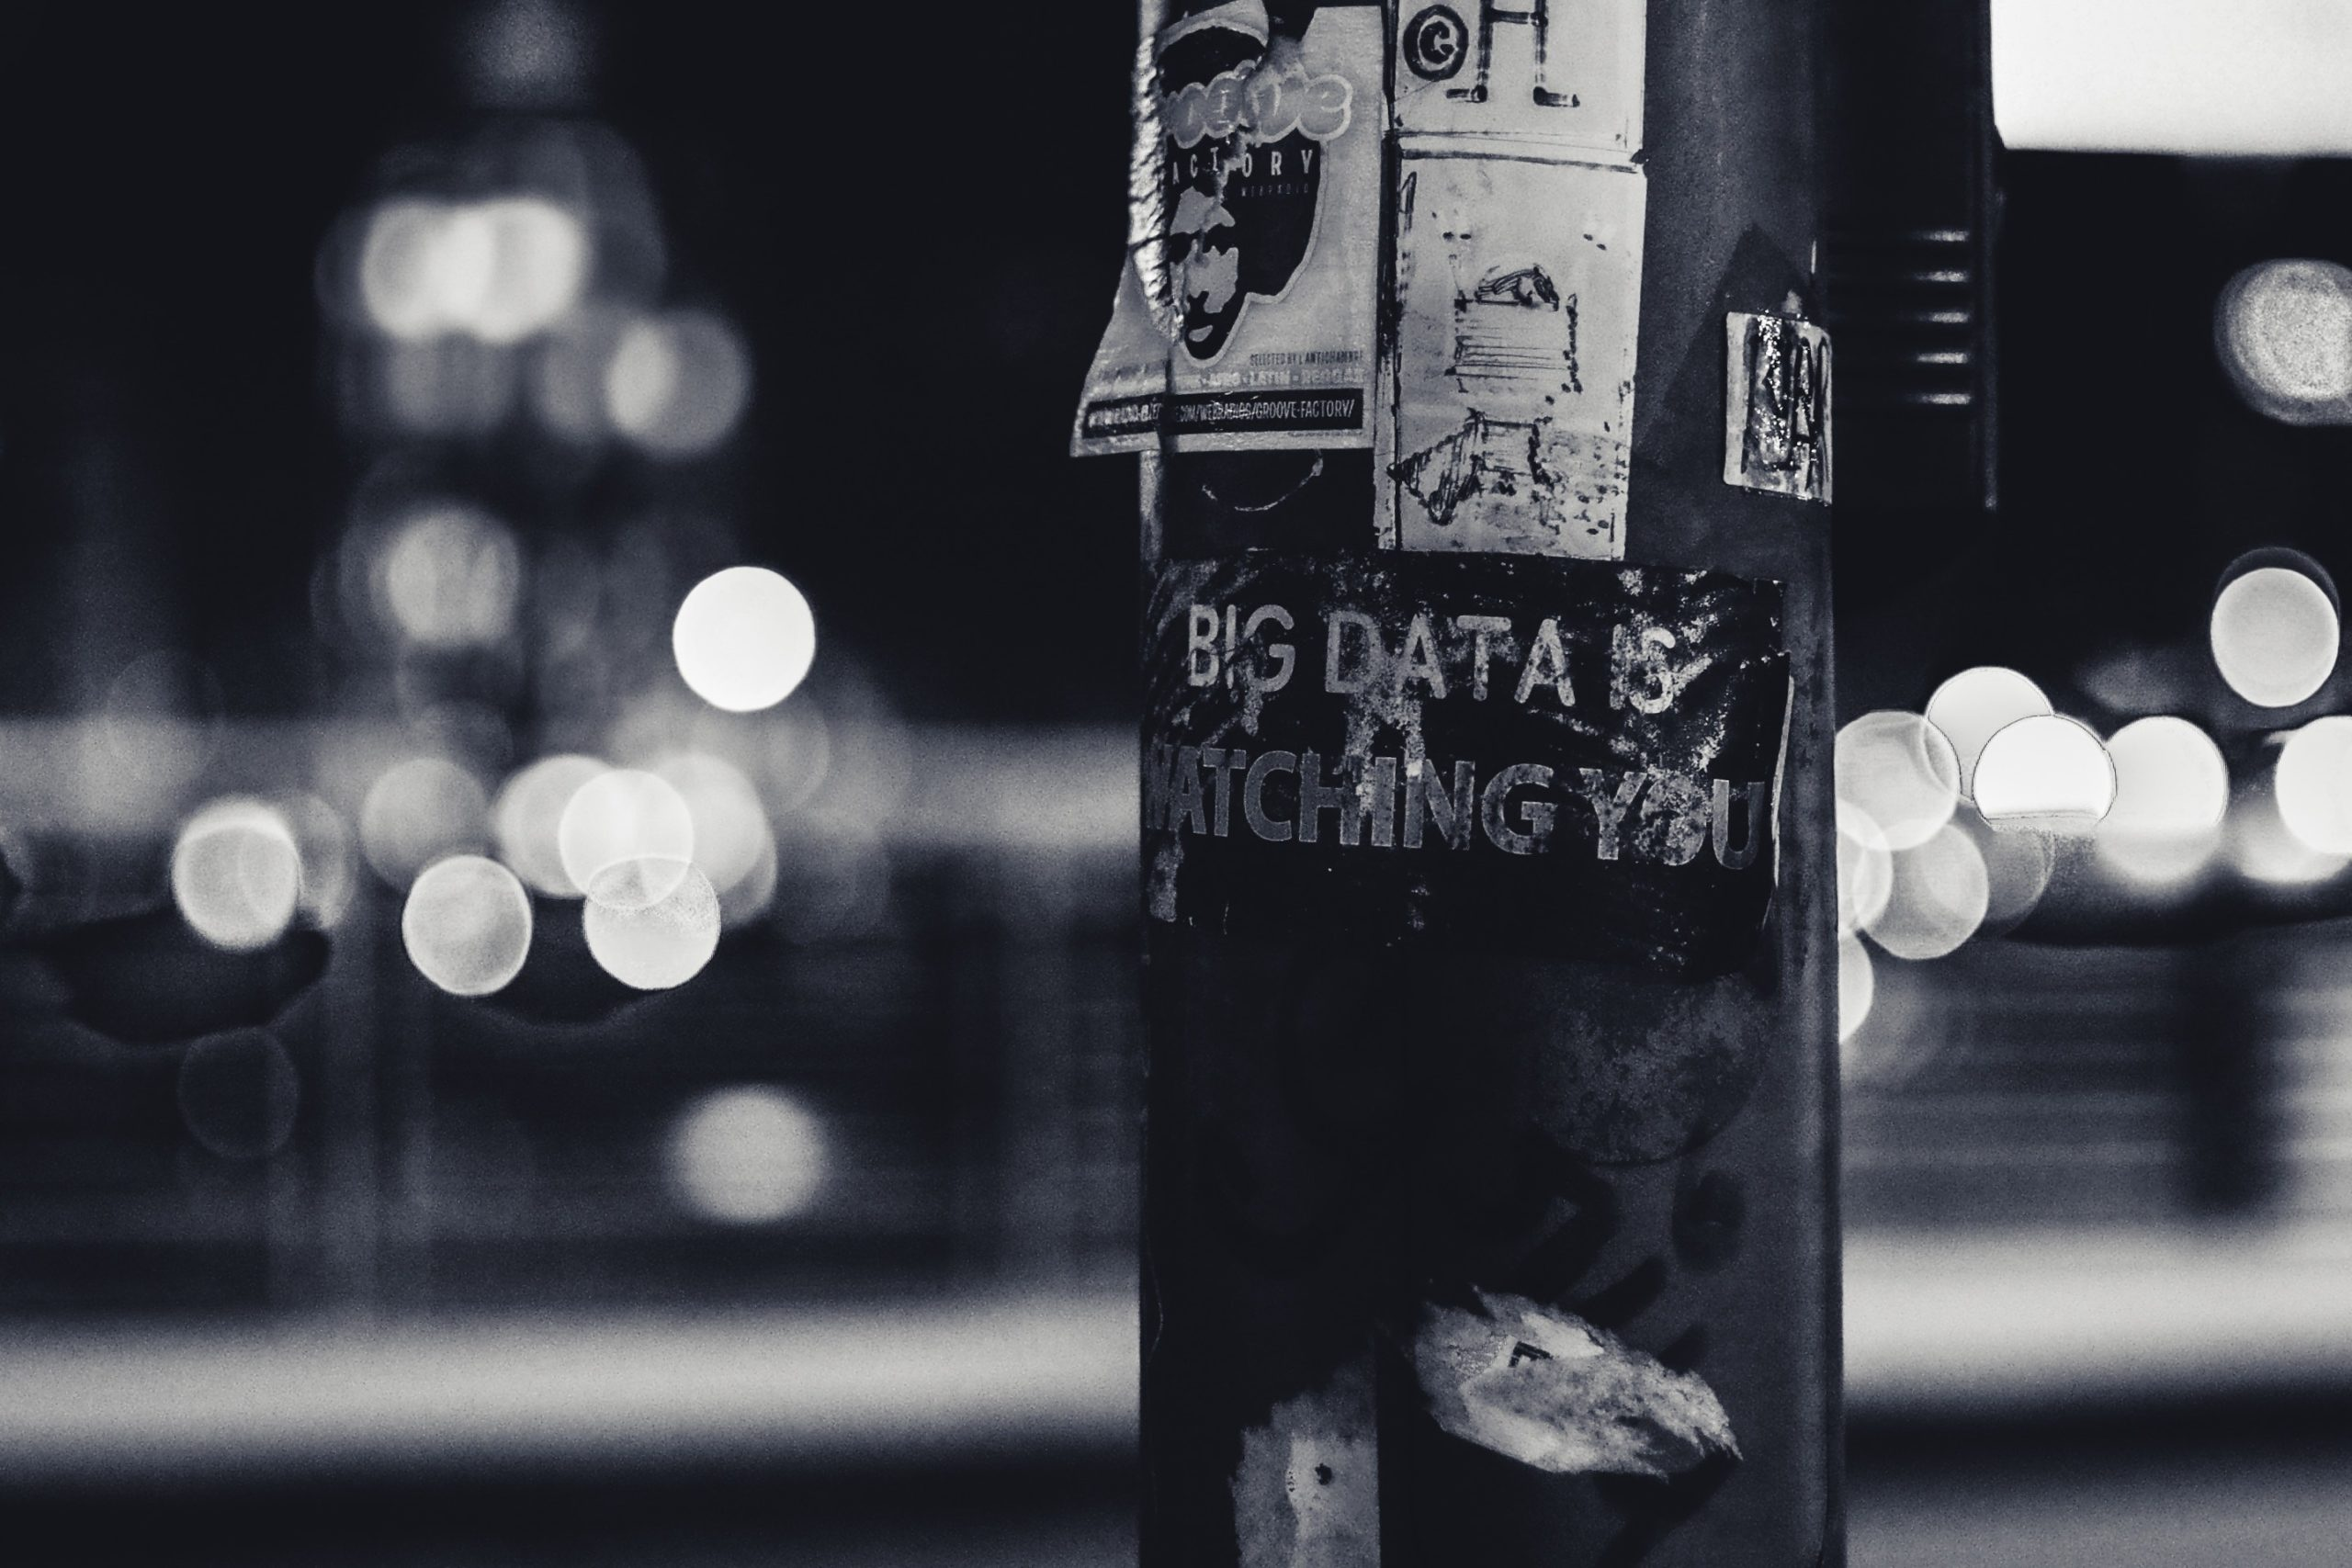 big data watching you write on the post